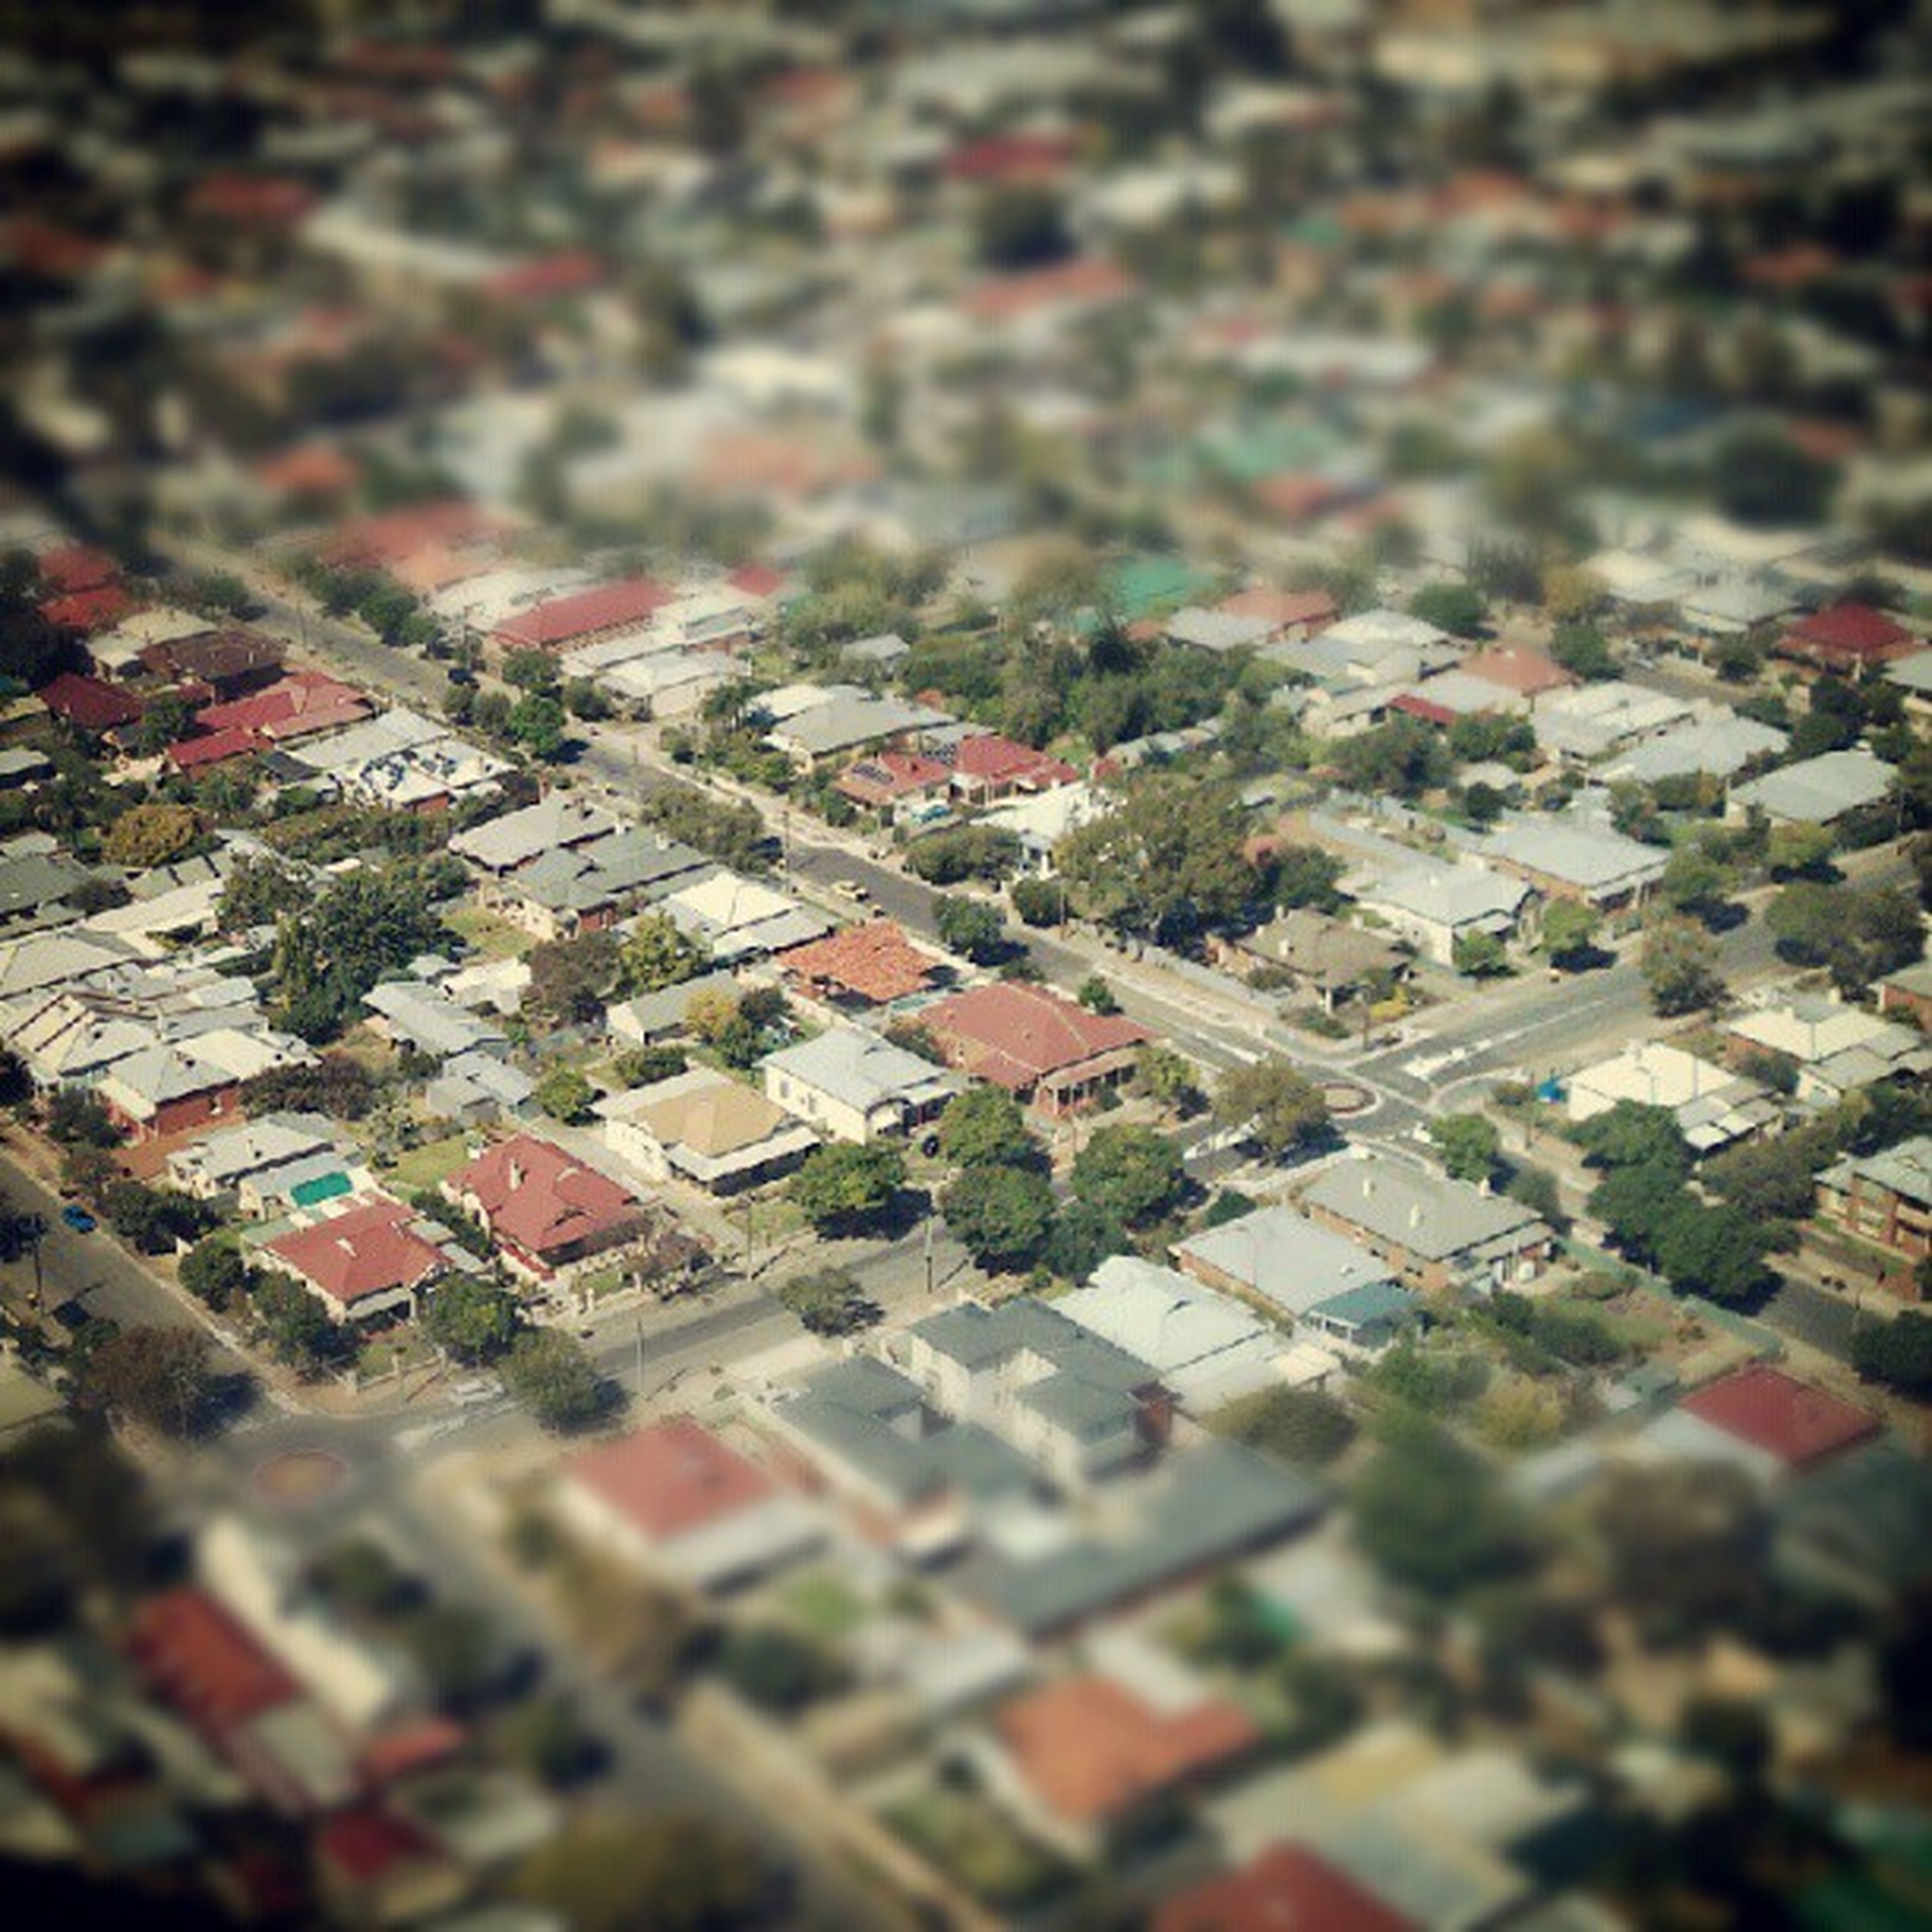 building exterior, architecture, built structure, crowded, high angle view, residential district, city, cityscape, residential structure, residential building, roof, selective focus, house, town, day, townscape, outdoors, street, aerial view, no people